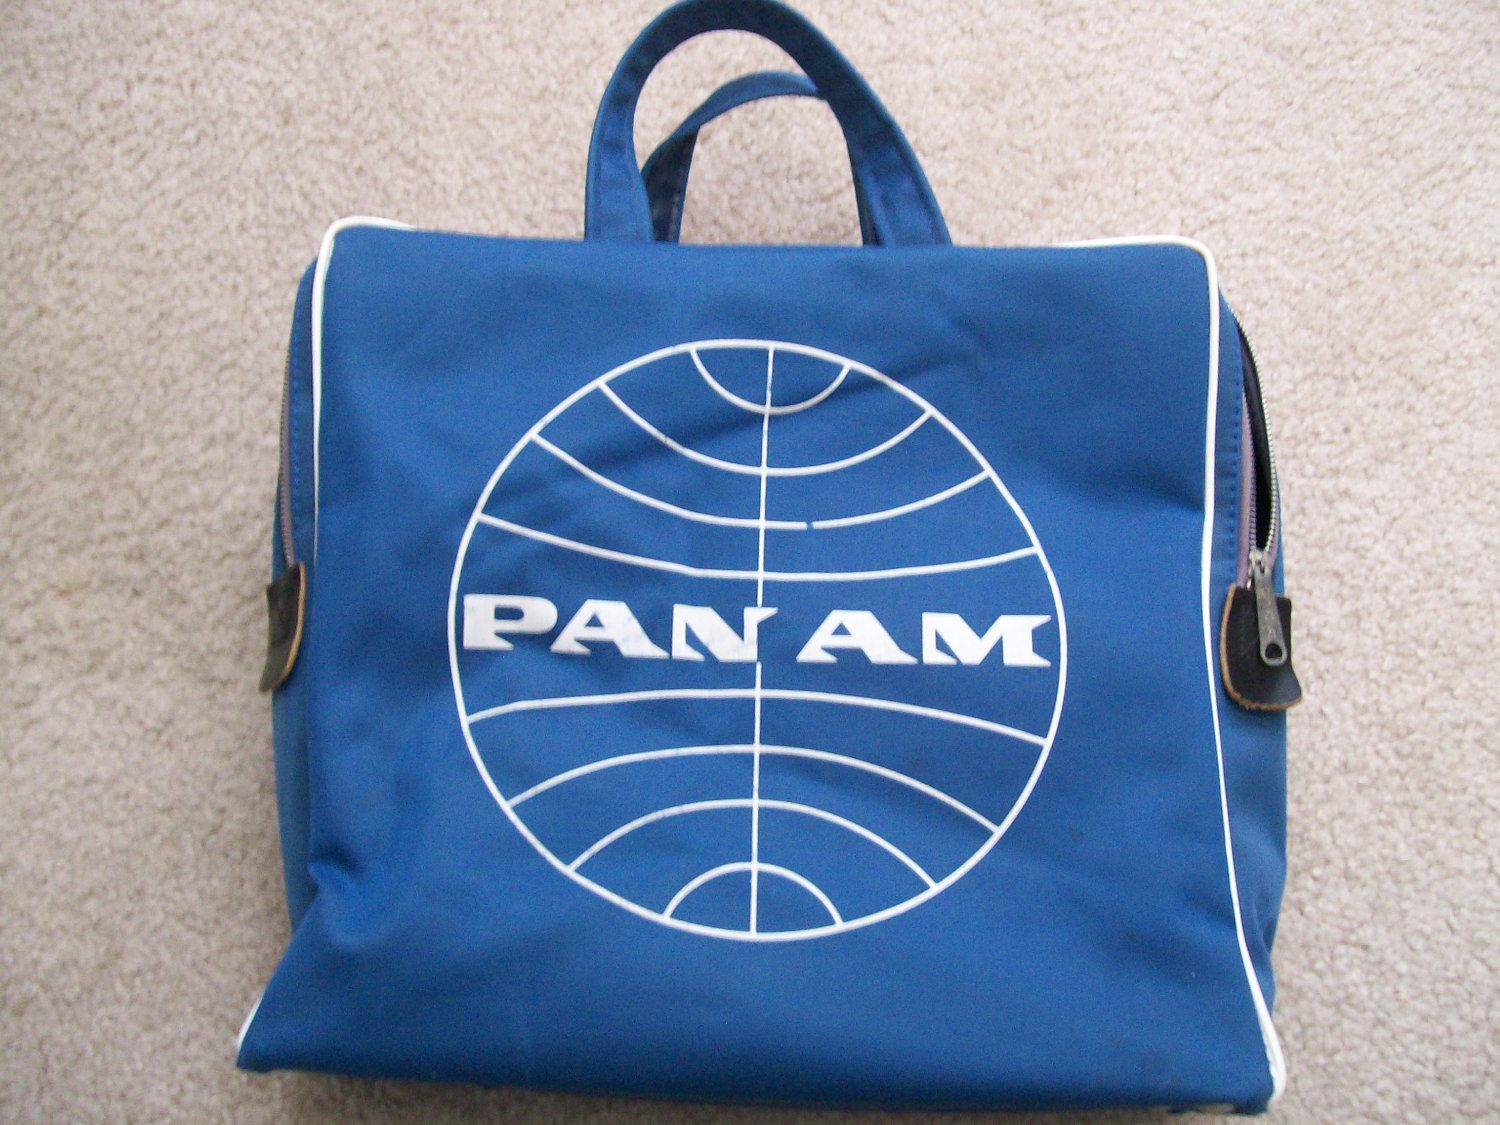 8d98d182fe Vintage Pan Am Airlines Flight Bag   Travel Bag   Carry On 1960 s ...